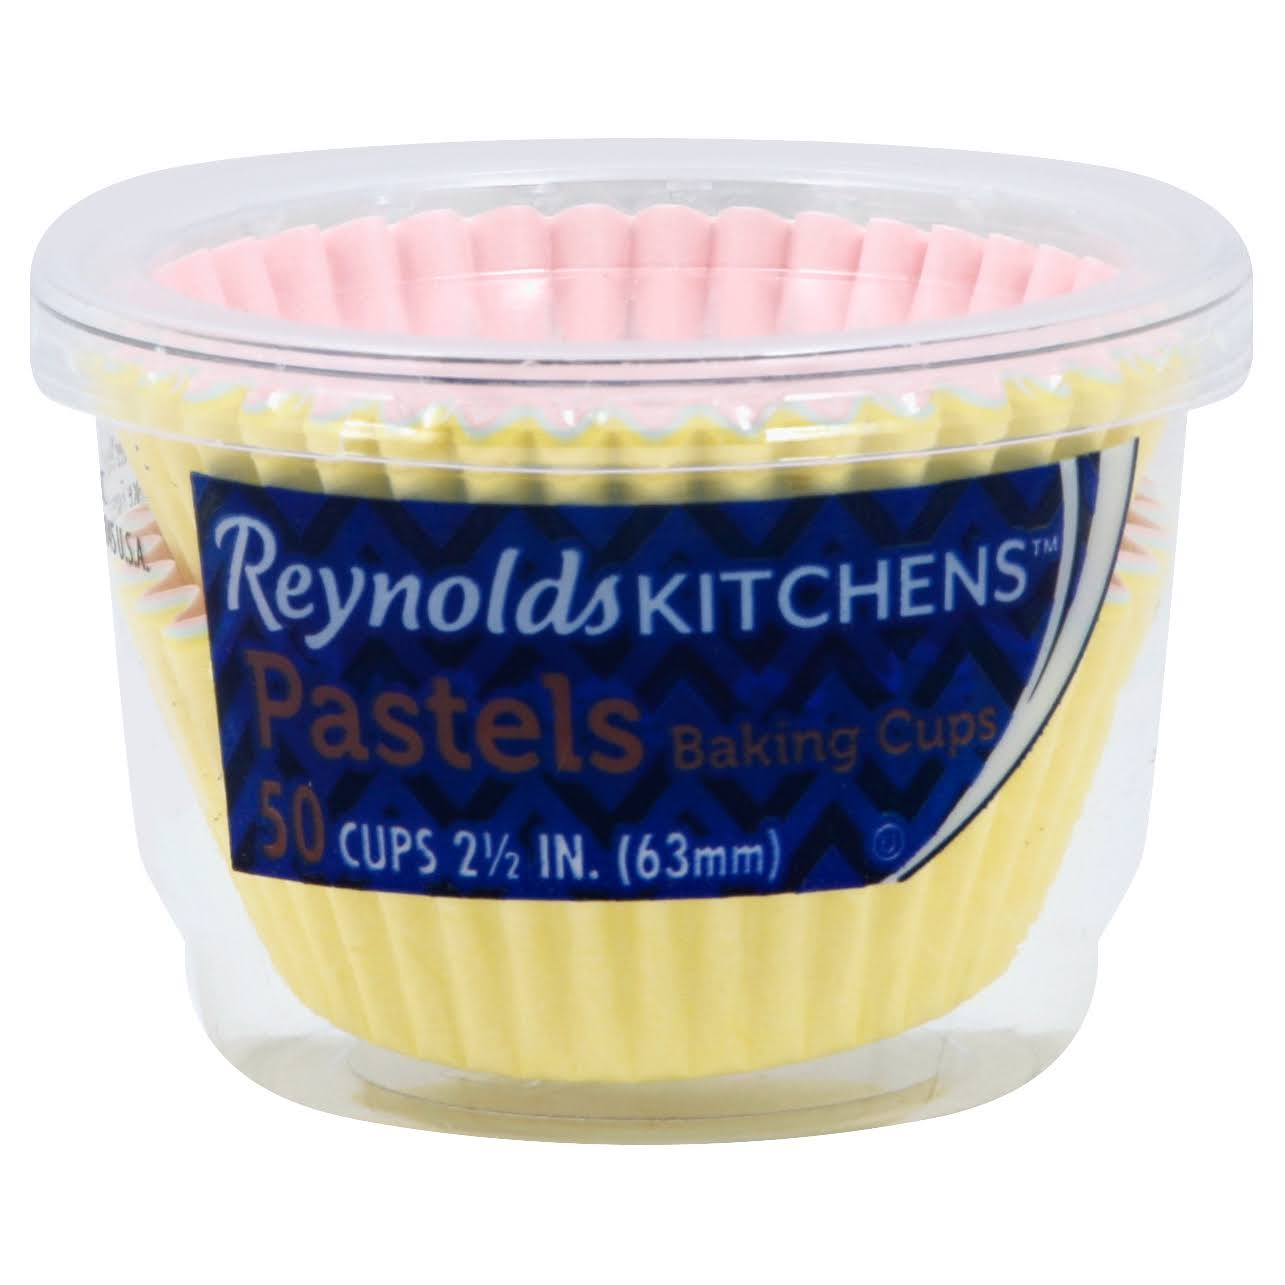 "Reynolds Baking Cups - 2 1/2"", 50ct"